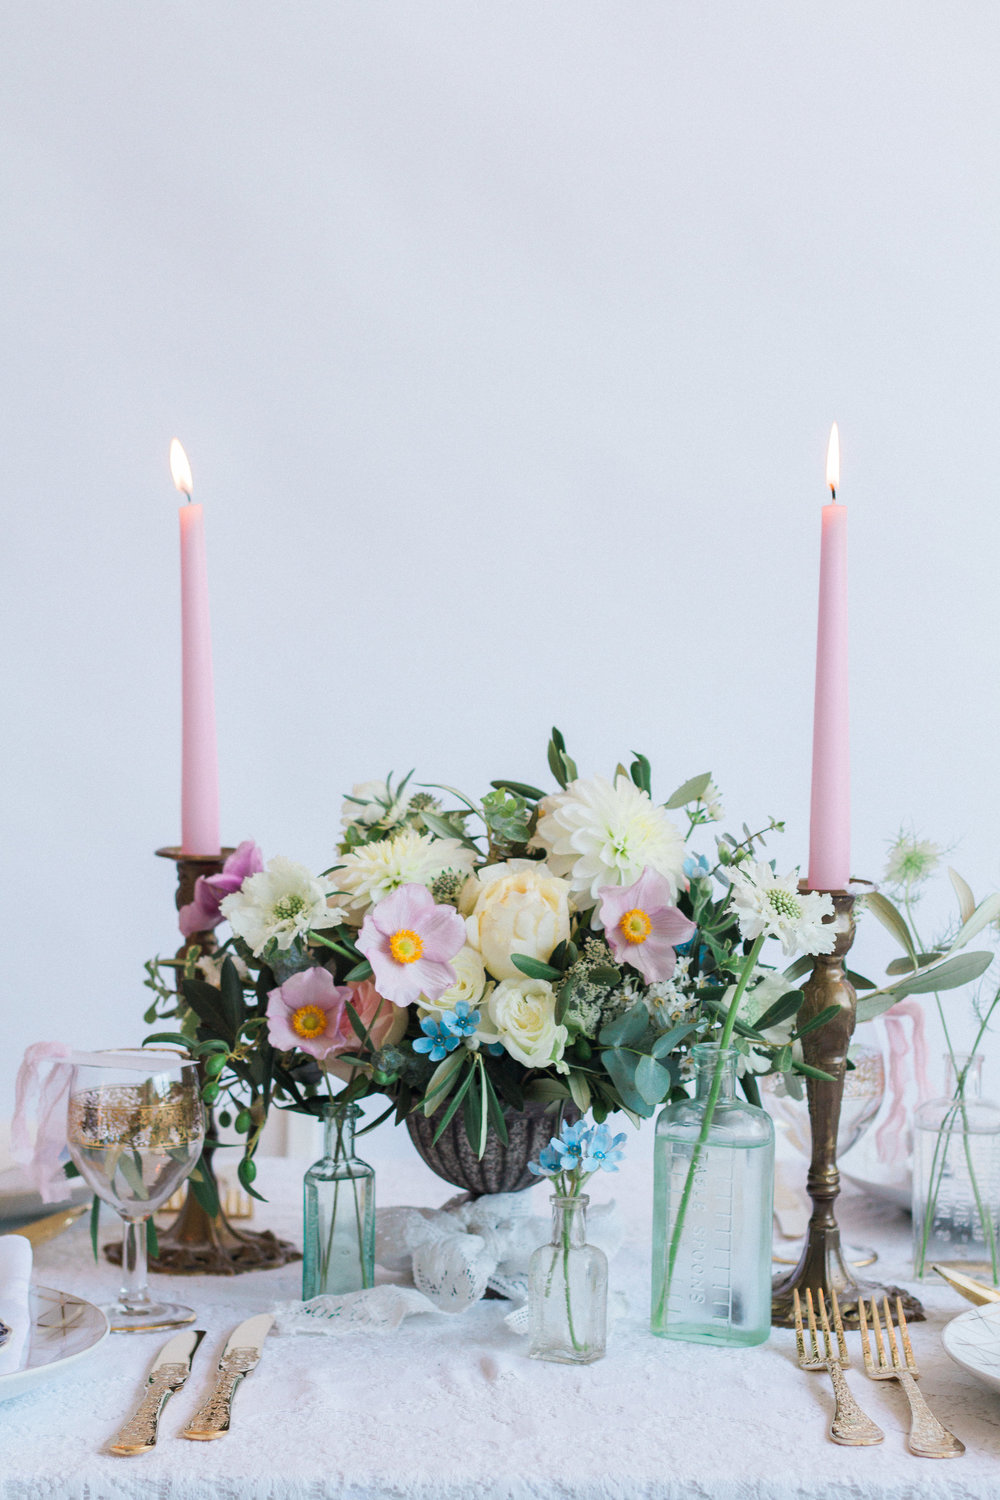 Vintage Amy Wedding Styling-Modern Vintage Wedding London-Elegant Vintage Wedding Tablescape